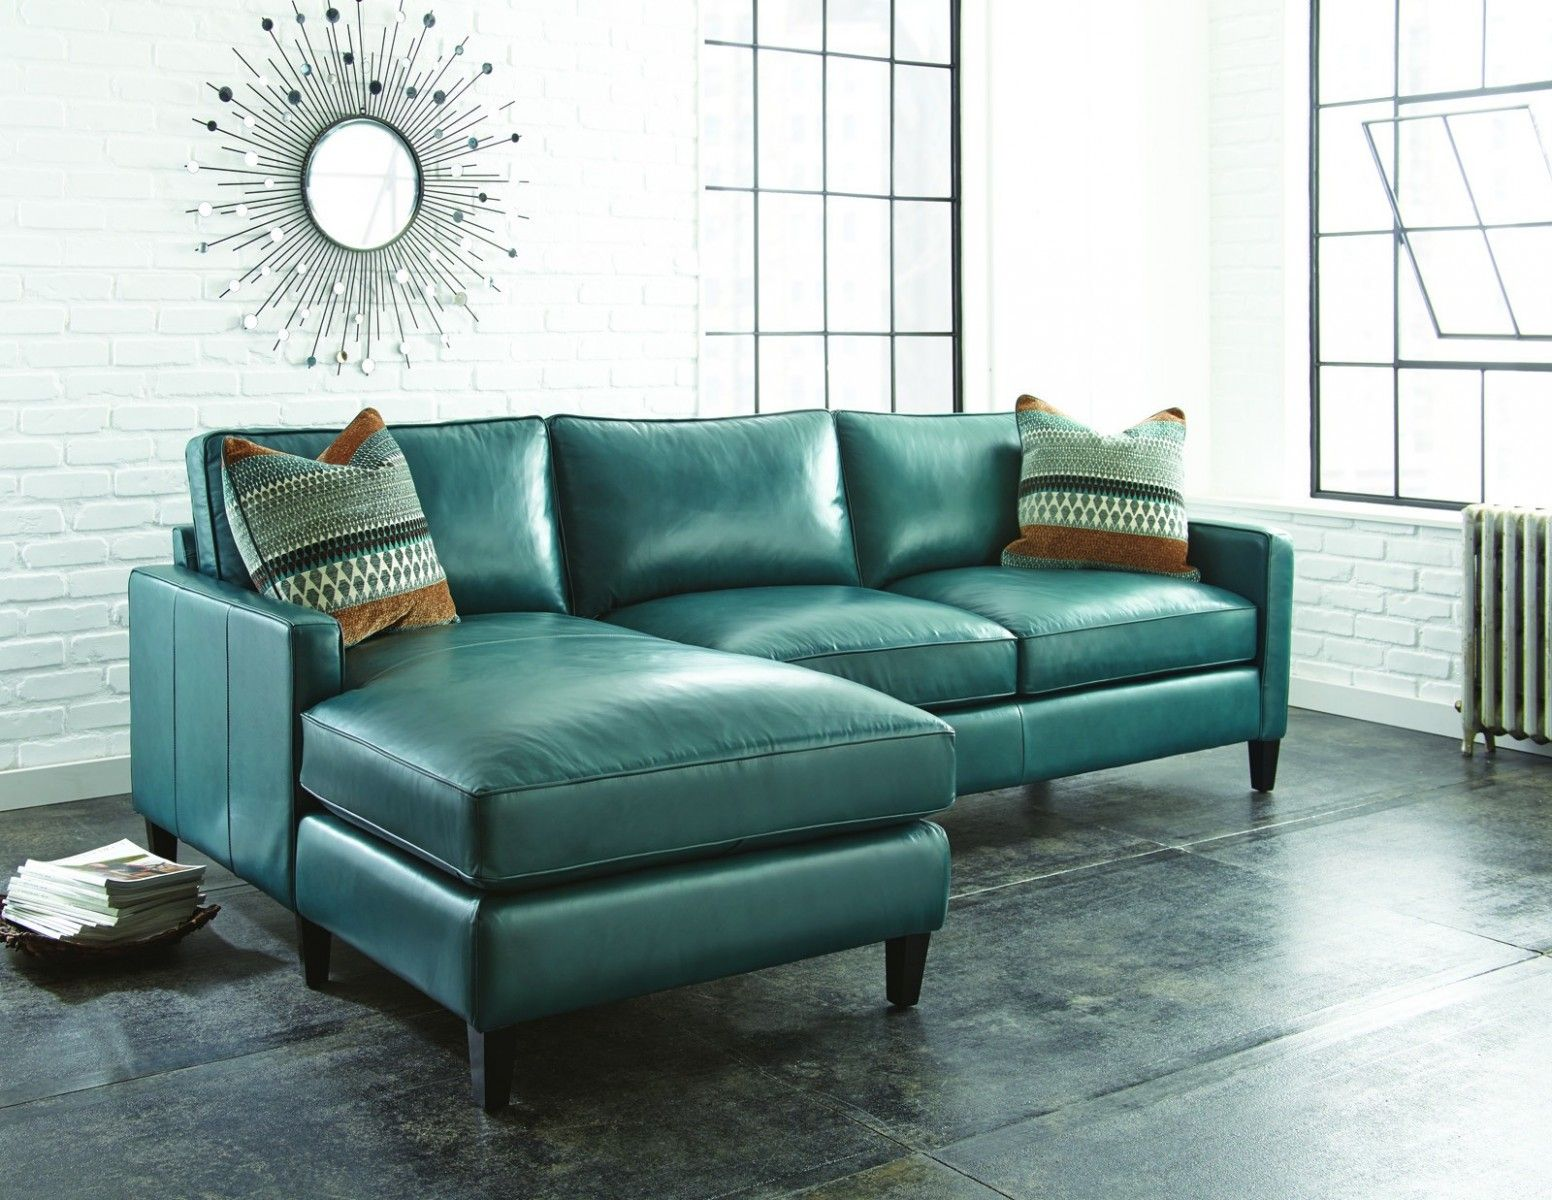 Arte Furniture Showroom Yerevan Aqua Green Leather Sofa The Versatility And Allure Of Leather